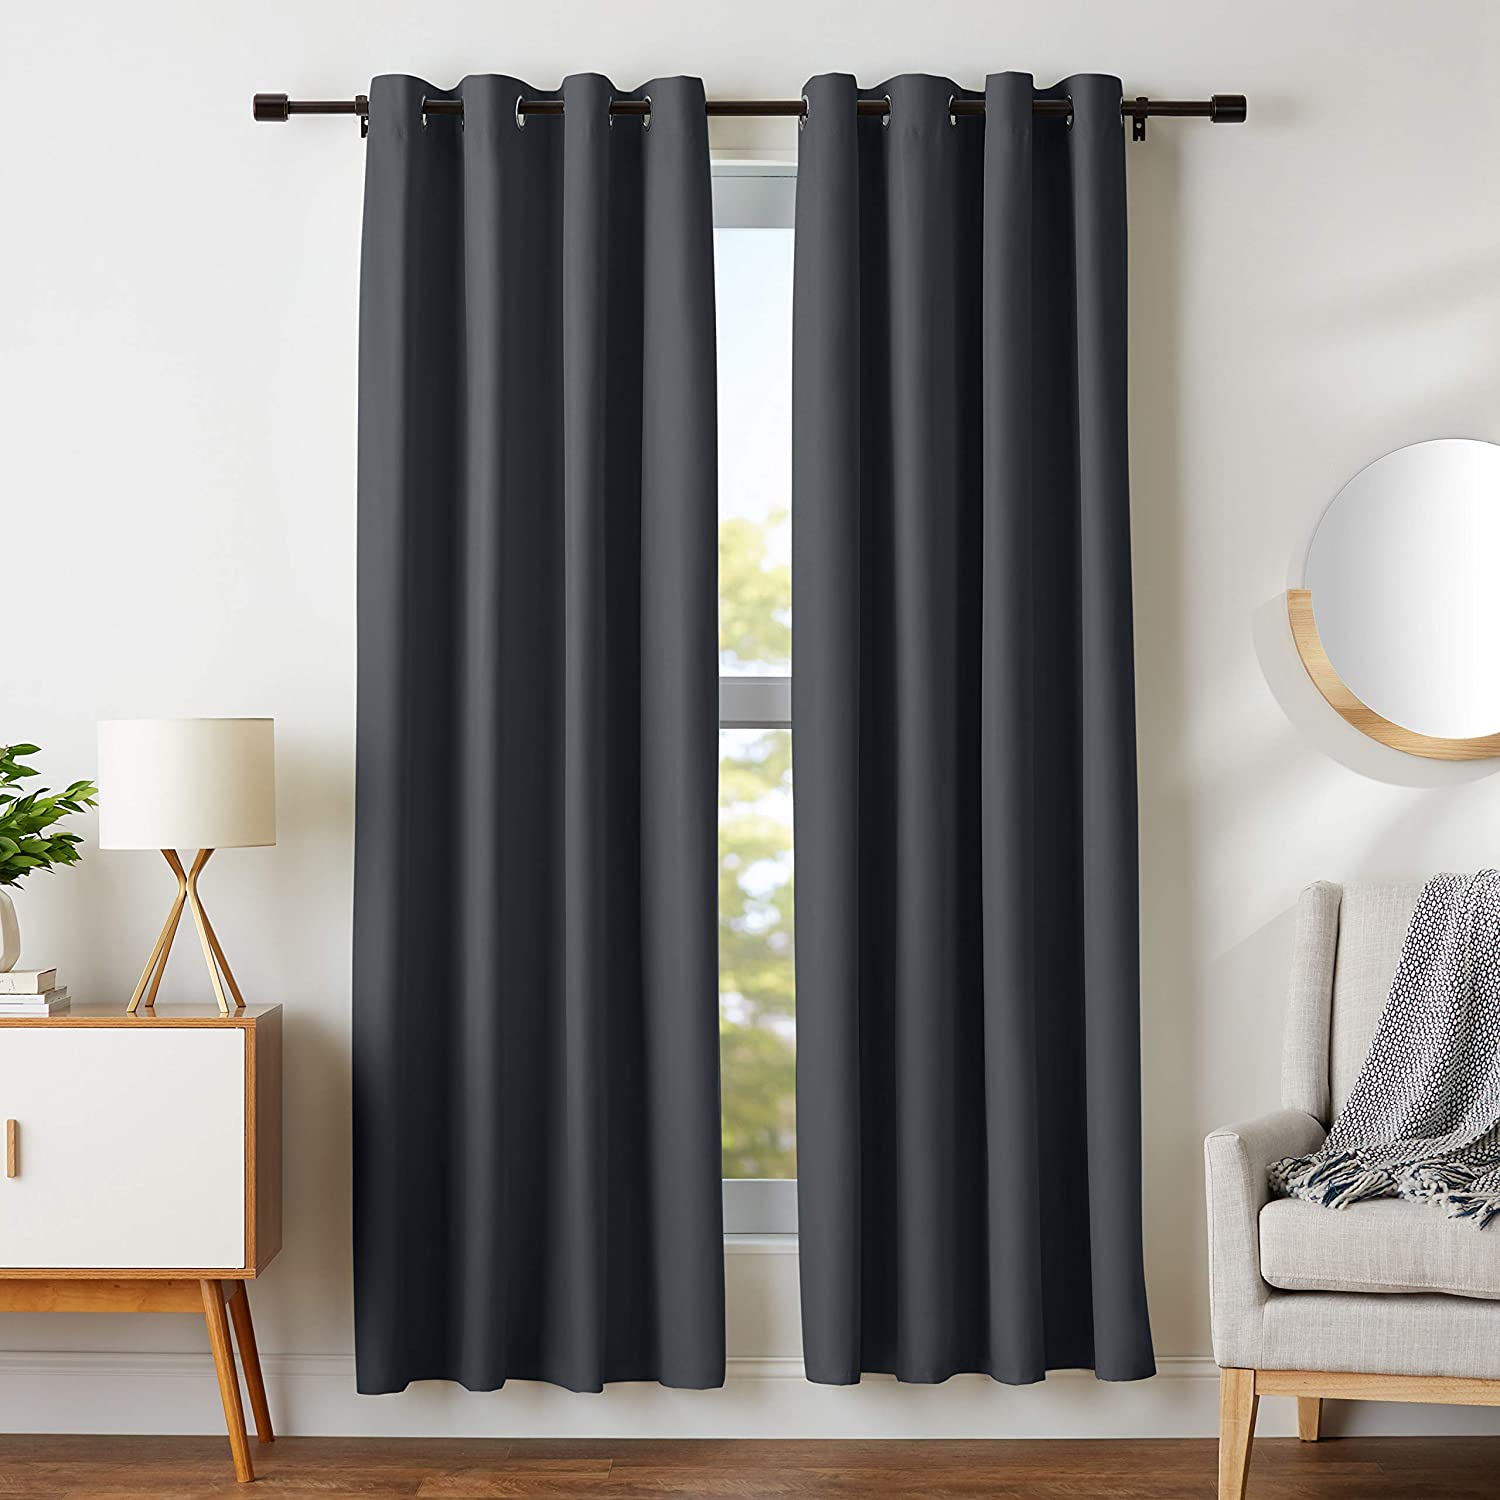 "AmazonBasics Room Darkening Blackout Window Curtains with Grommets- 52"" x 84"", Black, 2 Panels"